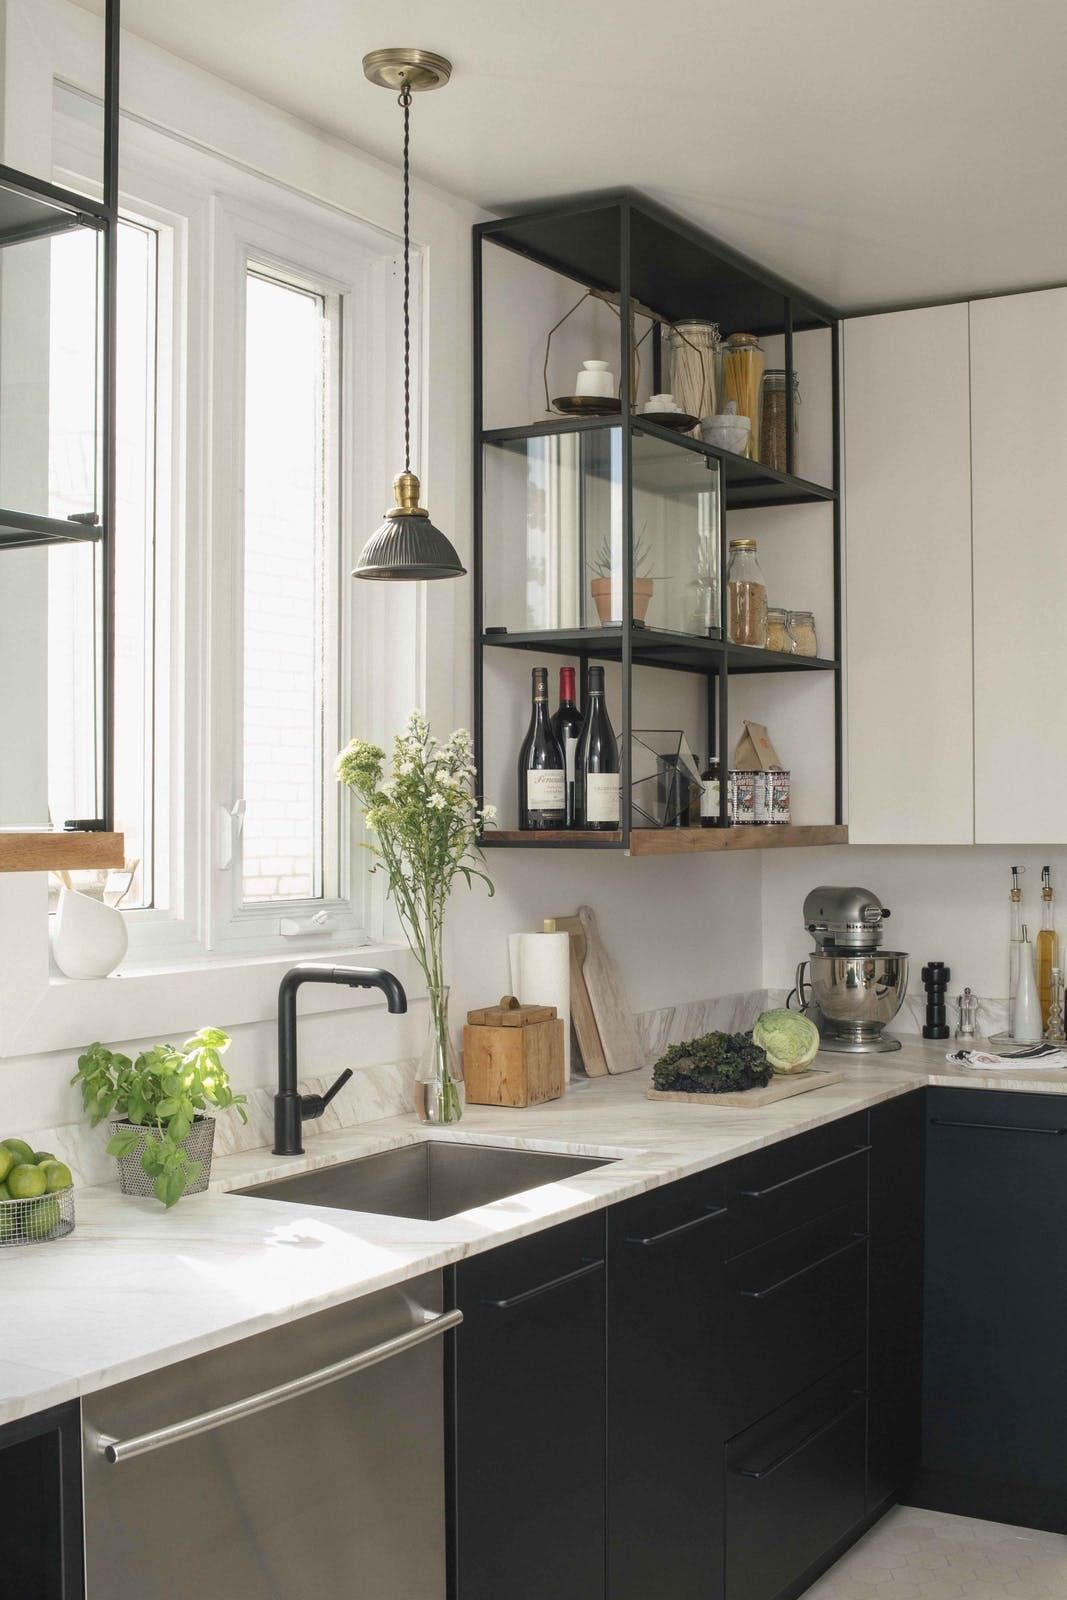 Inspiring Kitchens You Won't Believe are IKEA in 2020 ...